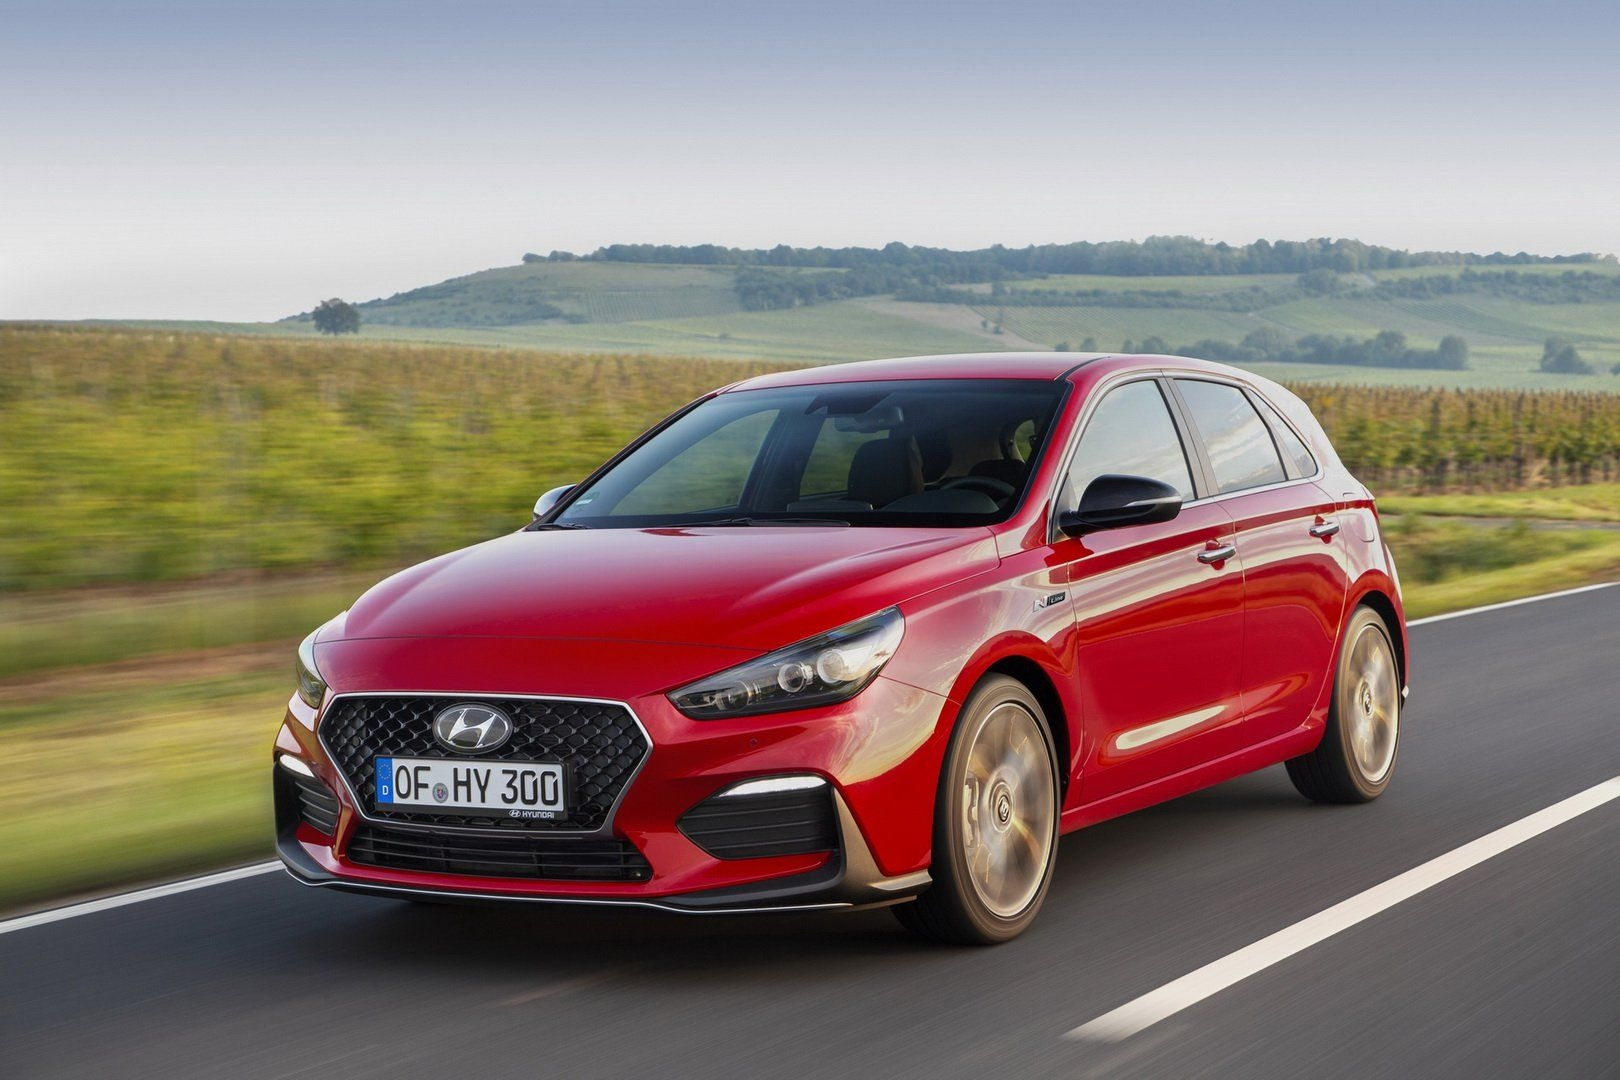 Hyundai i30 N 1.0-Litre Base Variant Launched In UK